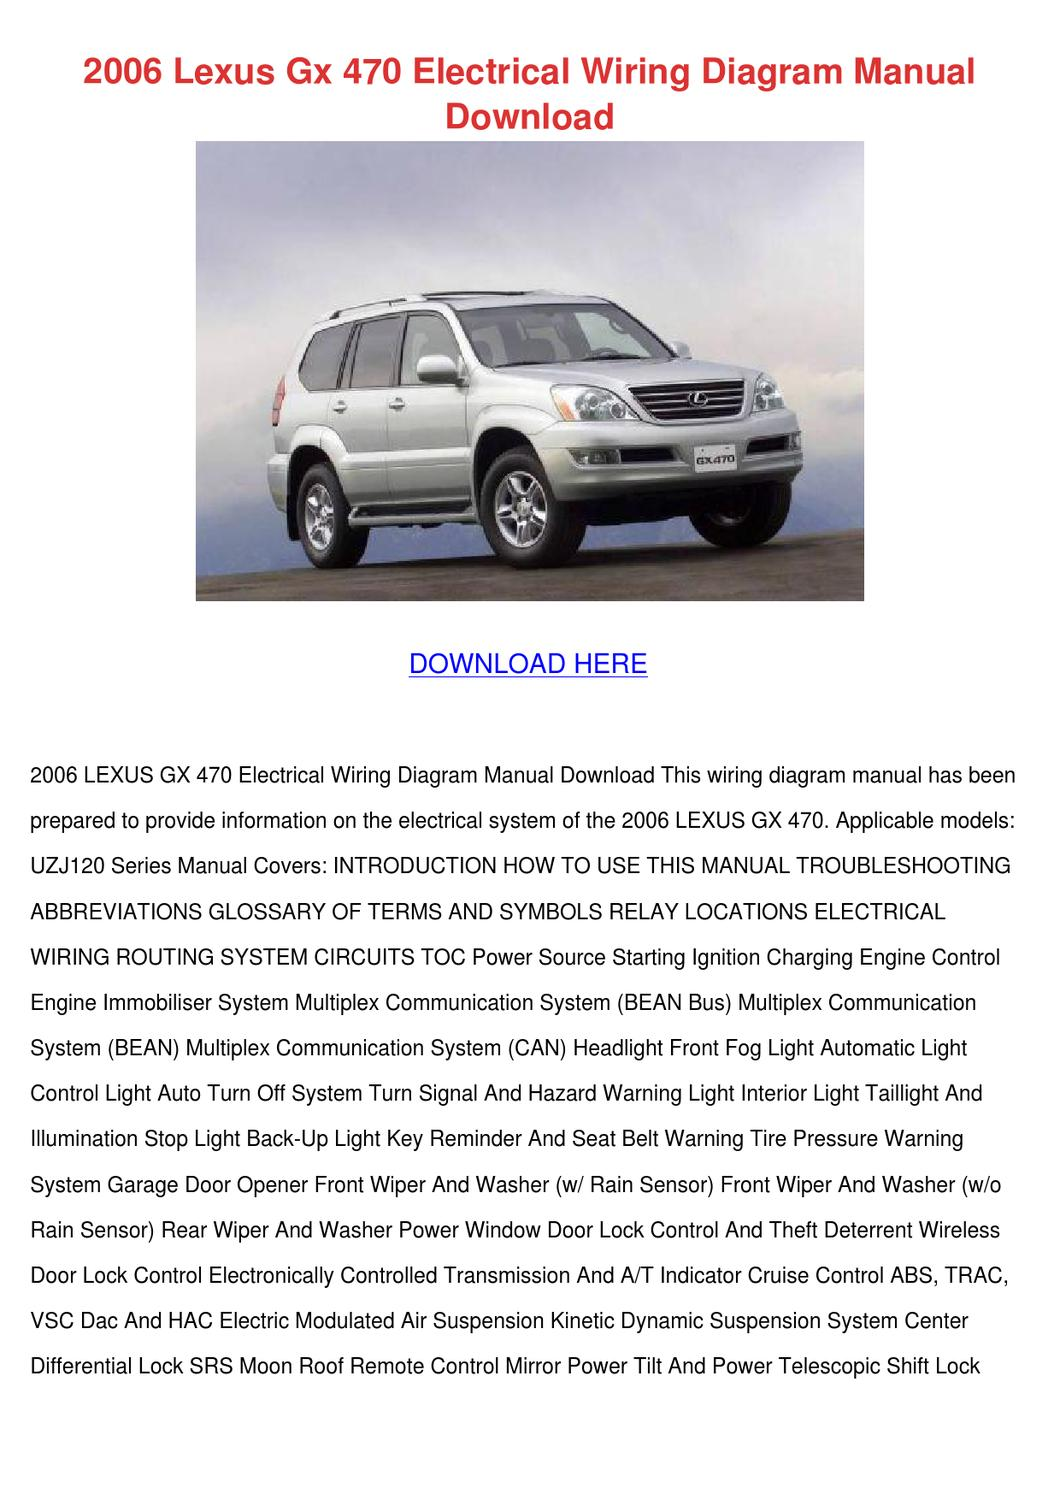 land cruiser door lock wiring diagram 1996 2006 lexus gx 470 electrical wiring diagram m by meaganjewett issuu  2006 lexus gx 470 electrical wiring